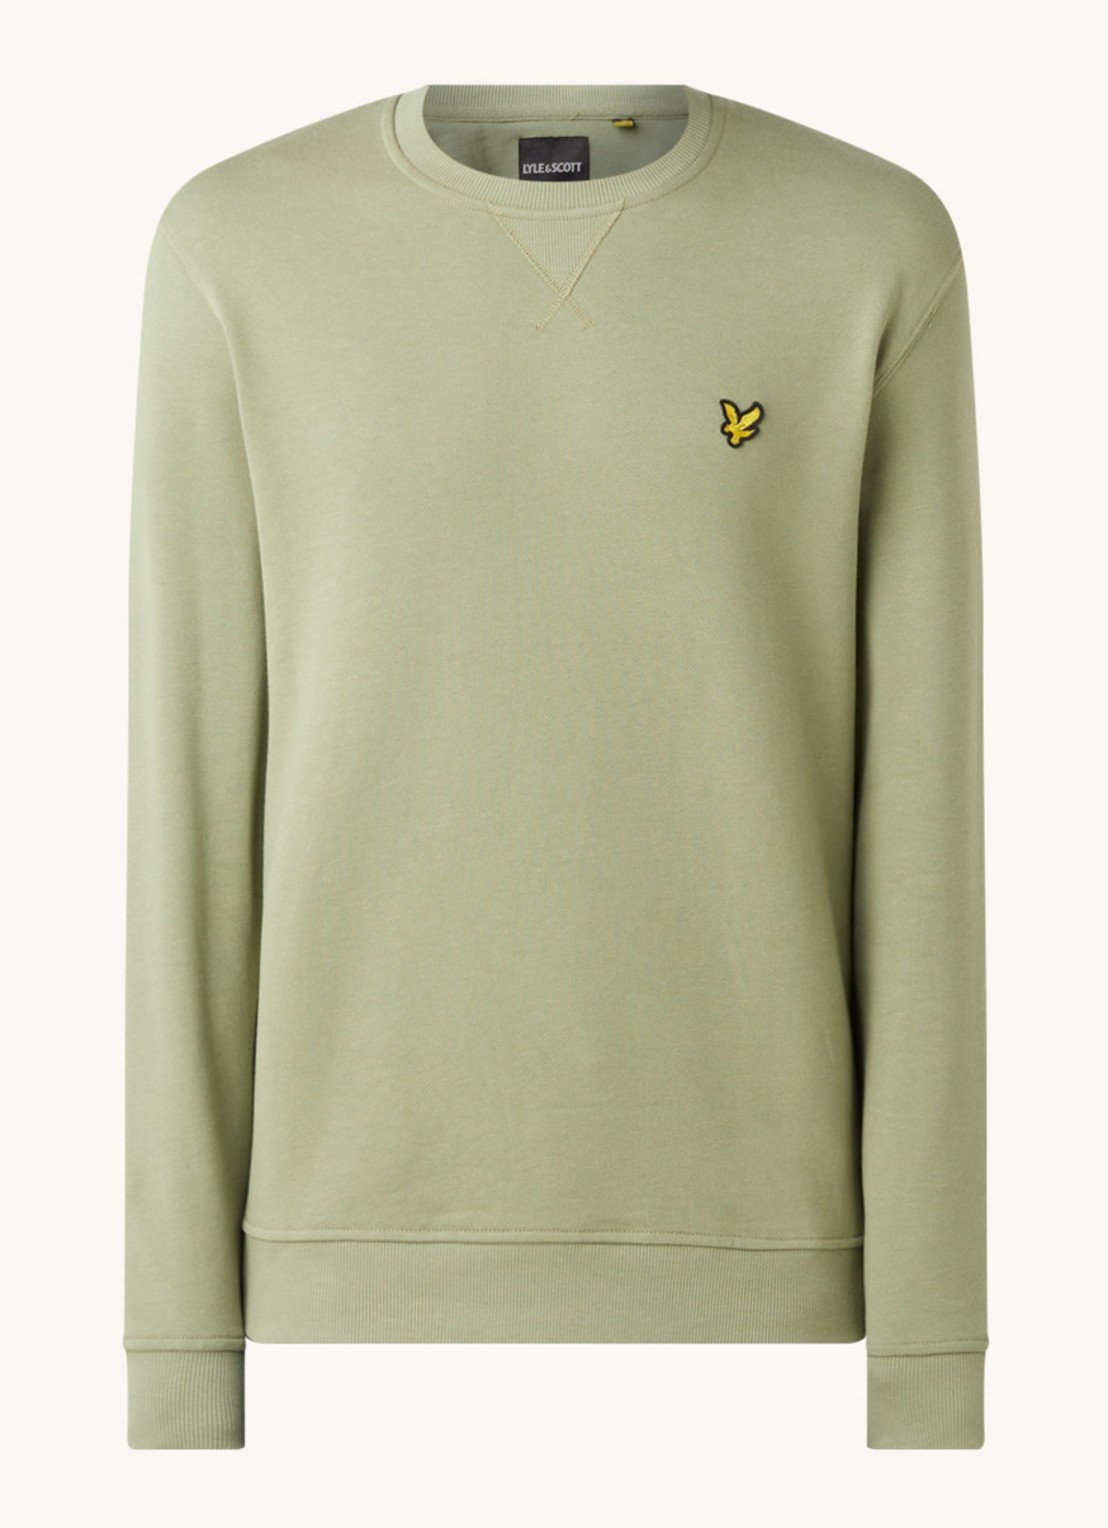 Lyle&Scott Sweater groen Lyle & Scott